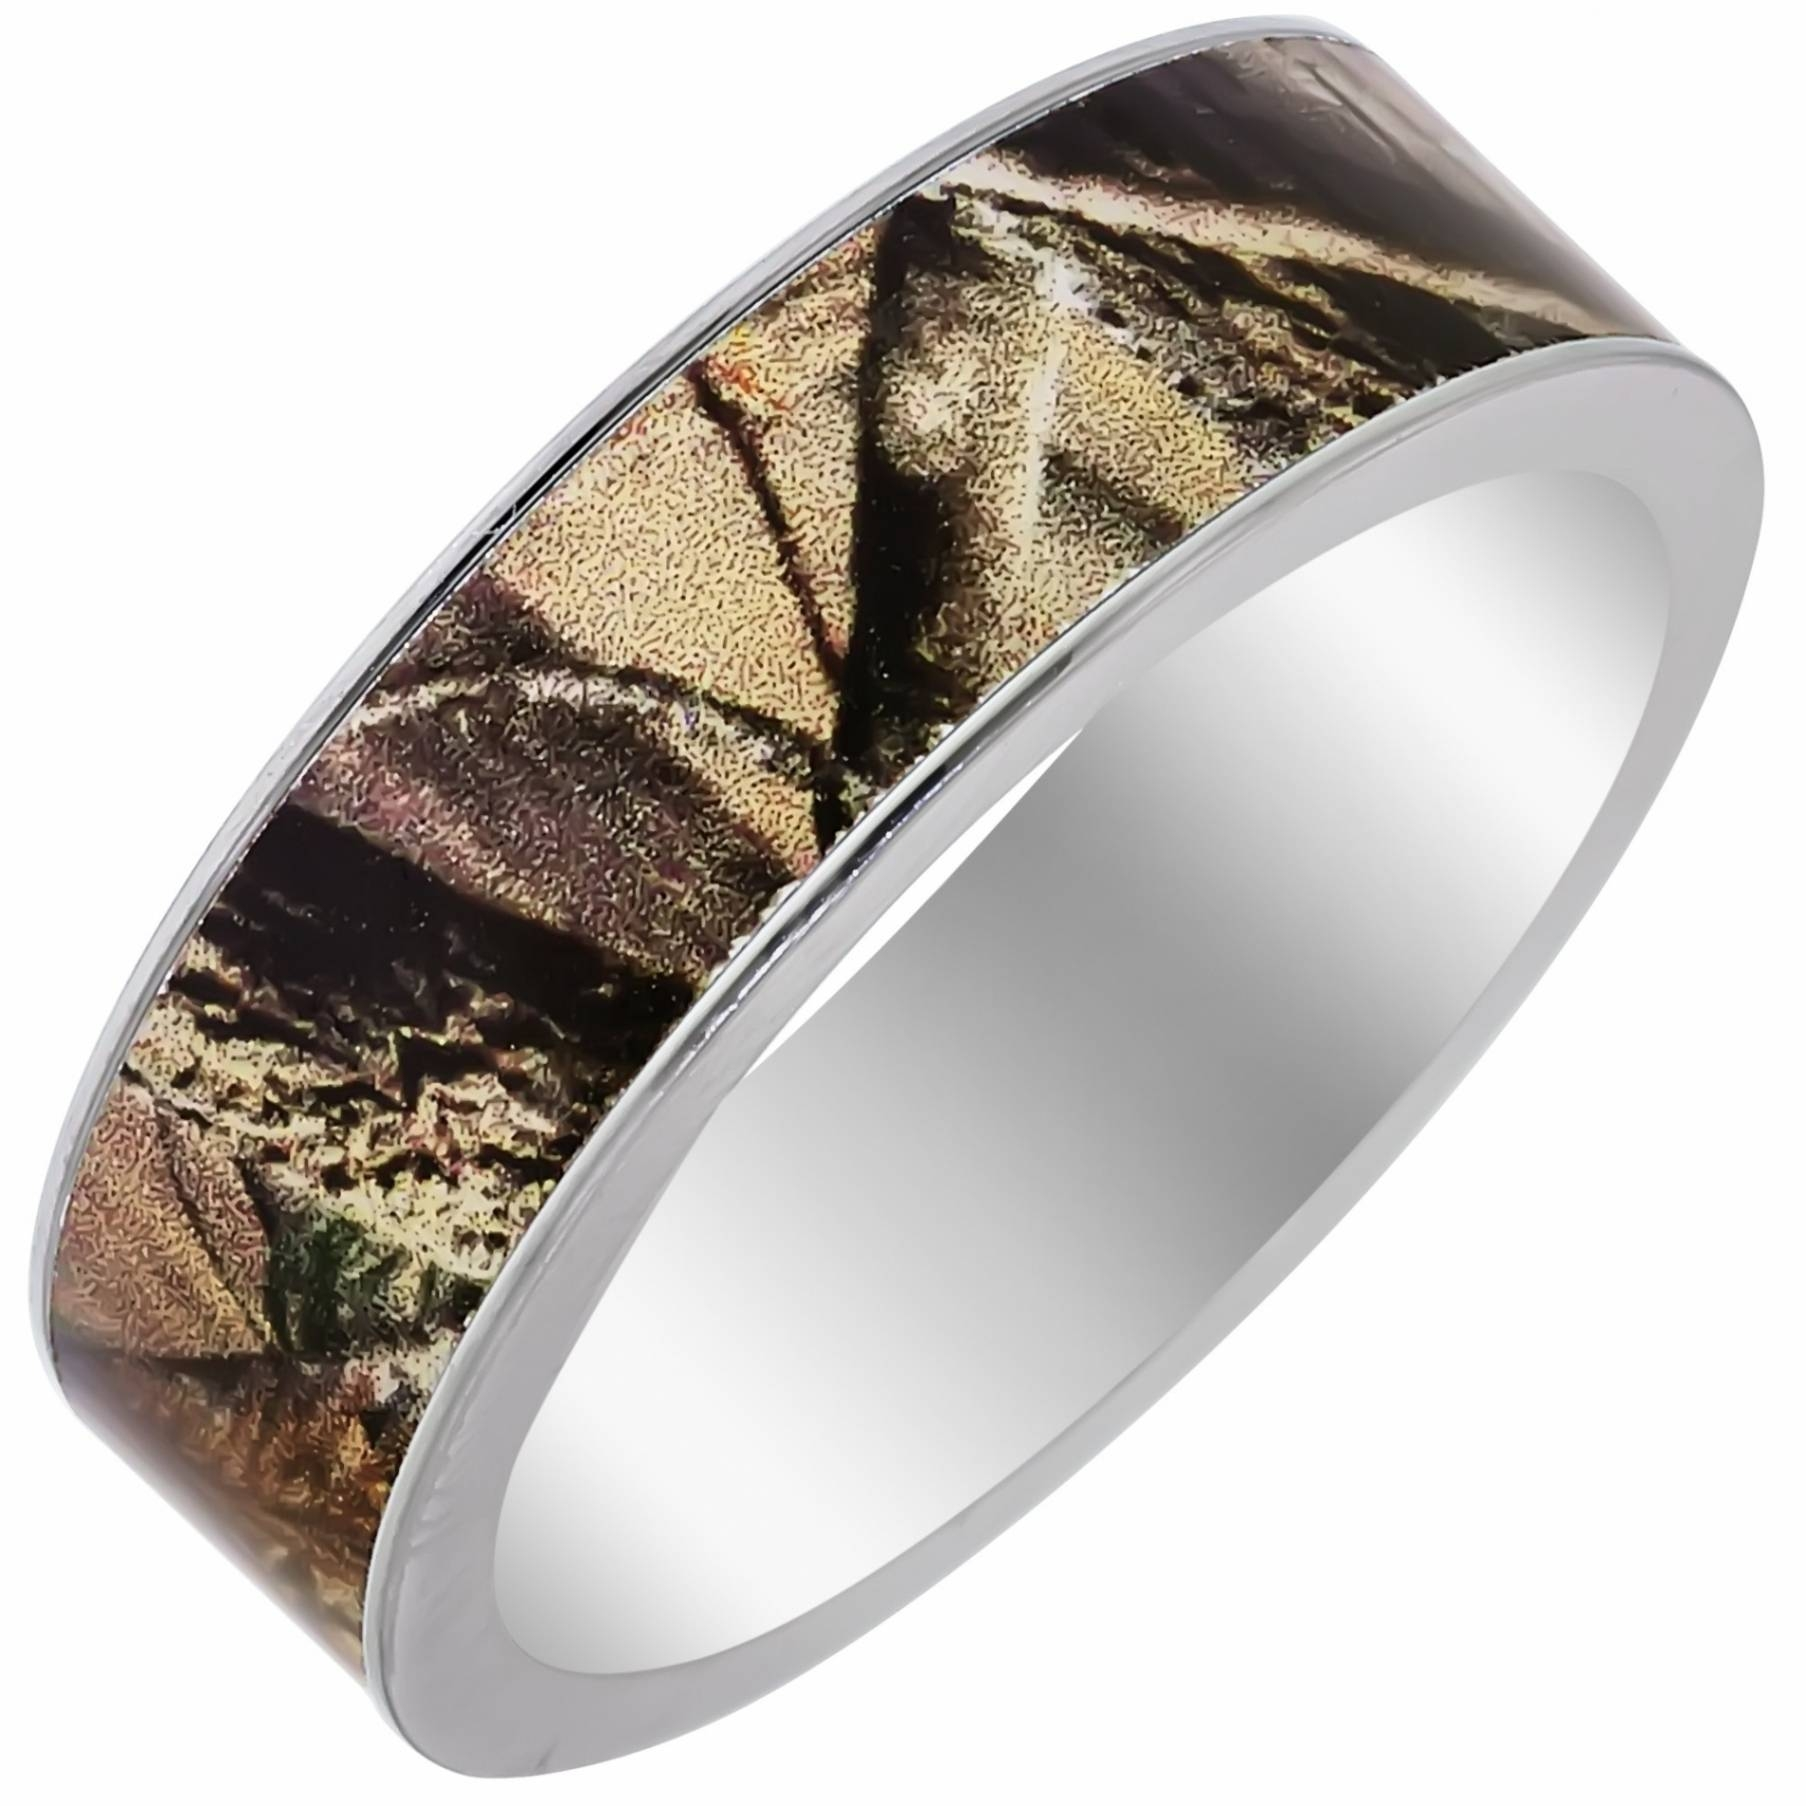 Best Of Mens Hunting Wedding Bands – Wedbands Throughout Unique With Men's Hunting Wedding Bands (View 14 of 15)